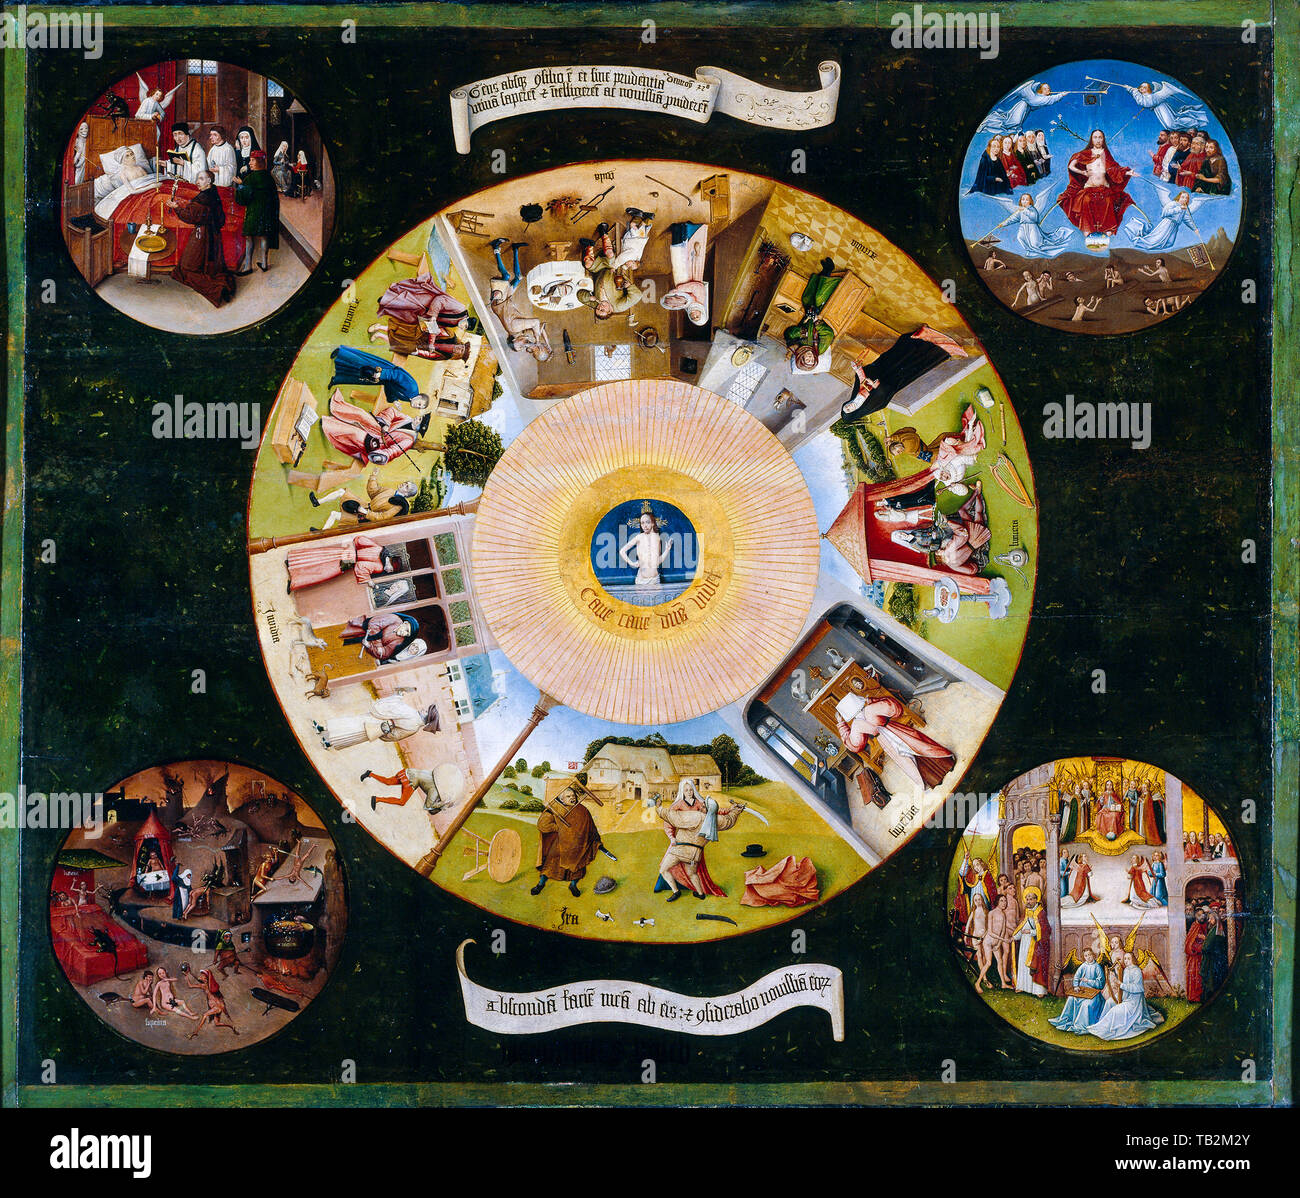 Hieronymus Bosch, The Seven Deadly Sins and the Four Last Things, painting, circa 1505 - Stock Image